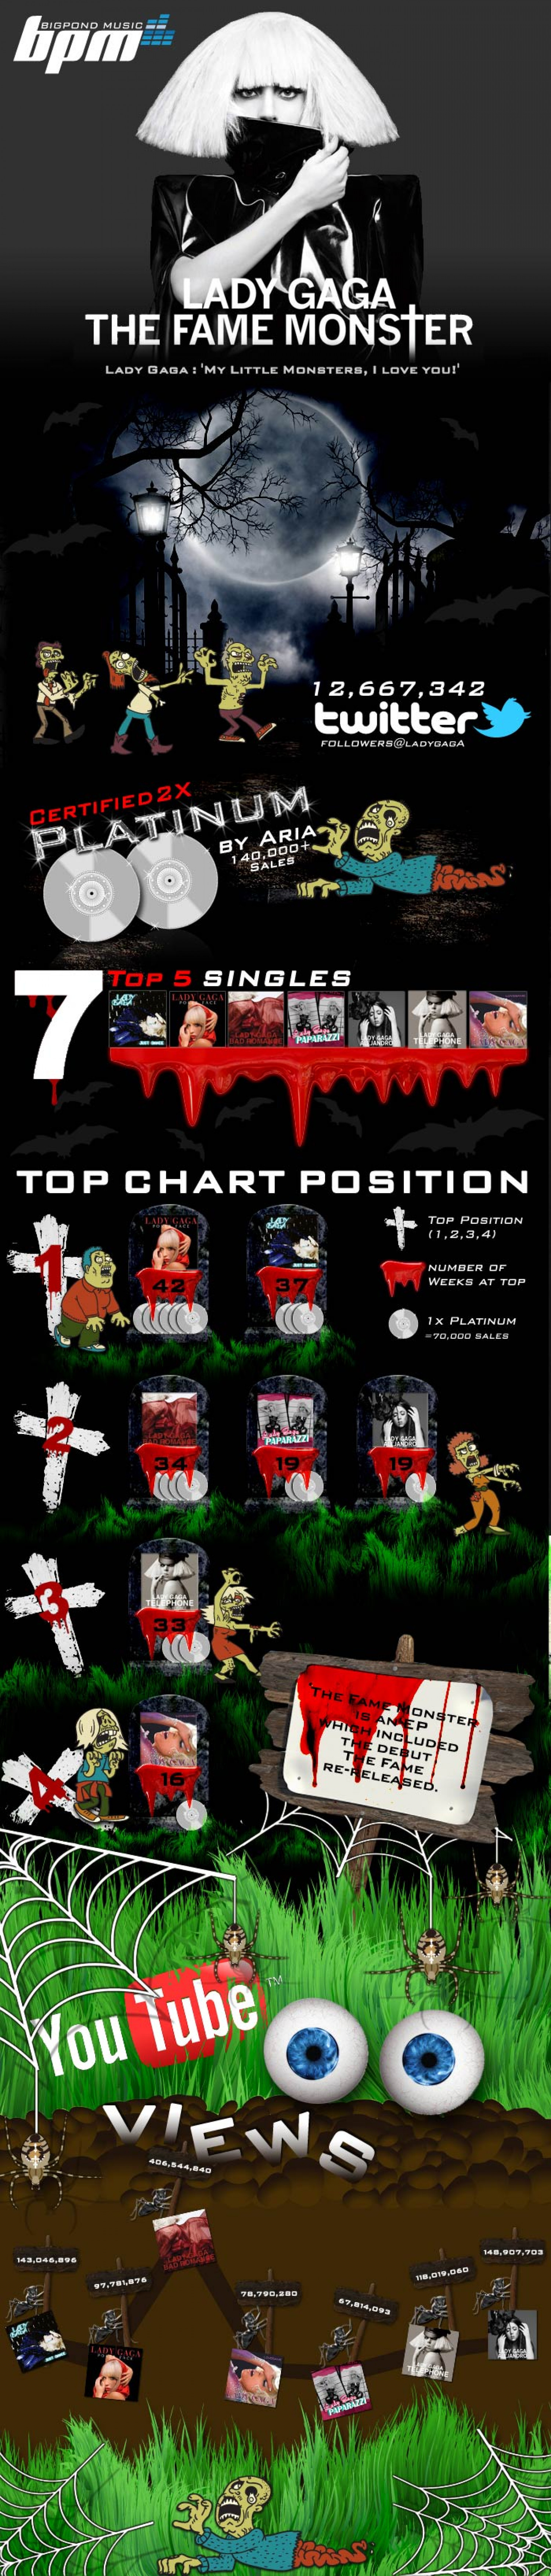 Lady Gaga The Fame Monster Halloween Top Charts Infographic